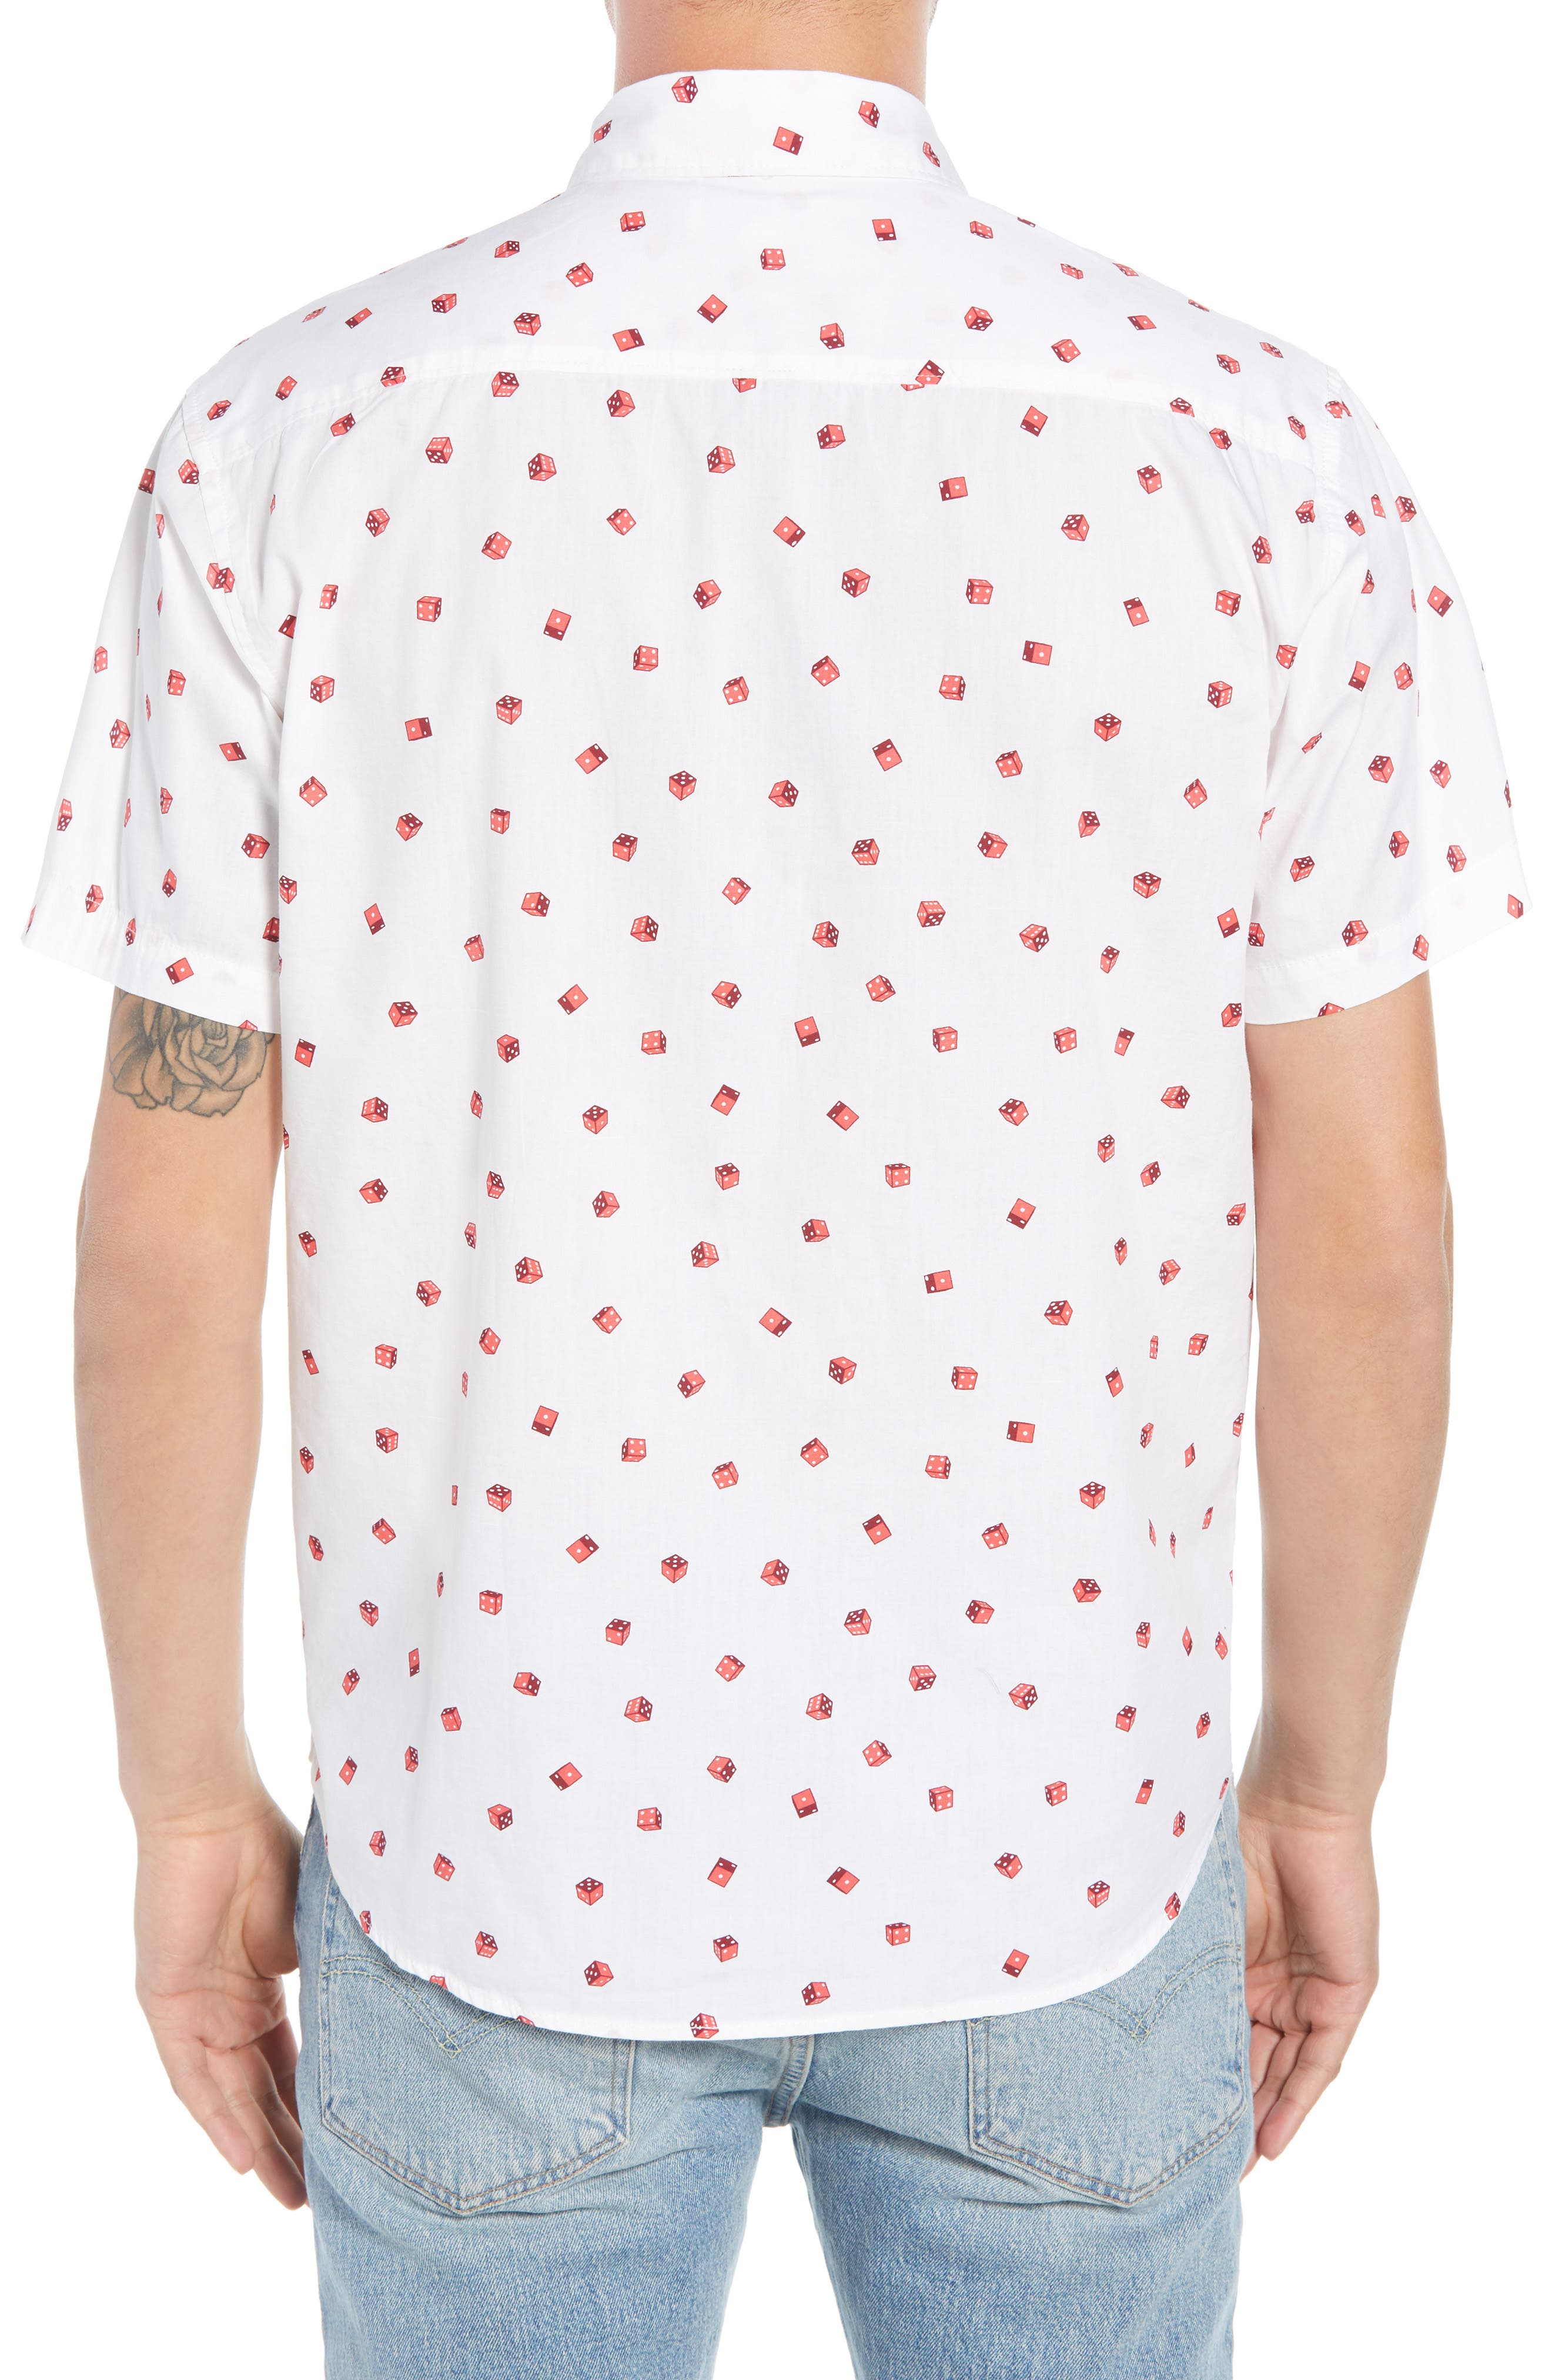 Print Camp Shirt,                             Alternate thumbnail 2, color,                             White / Red Rumba No Dice